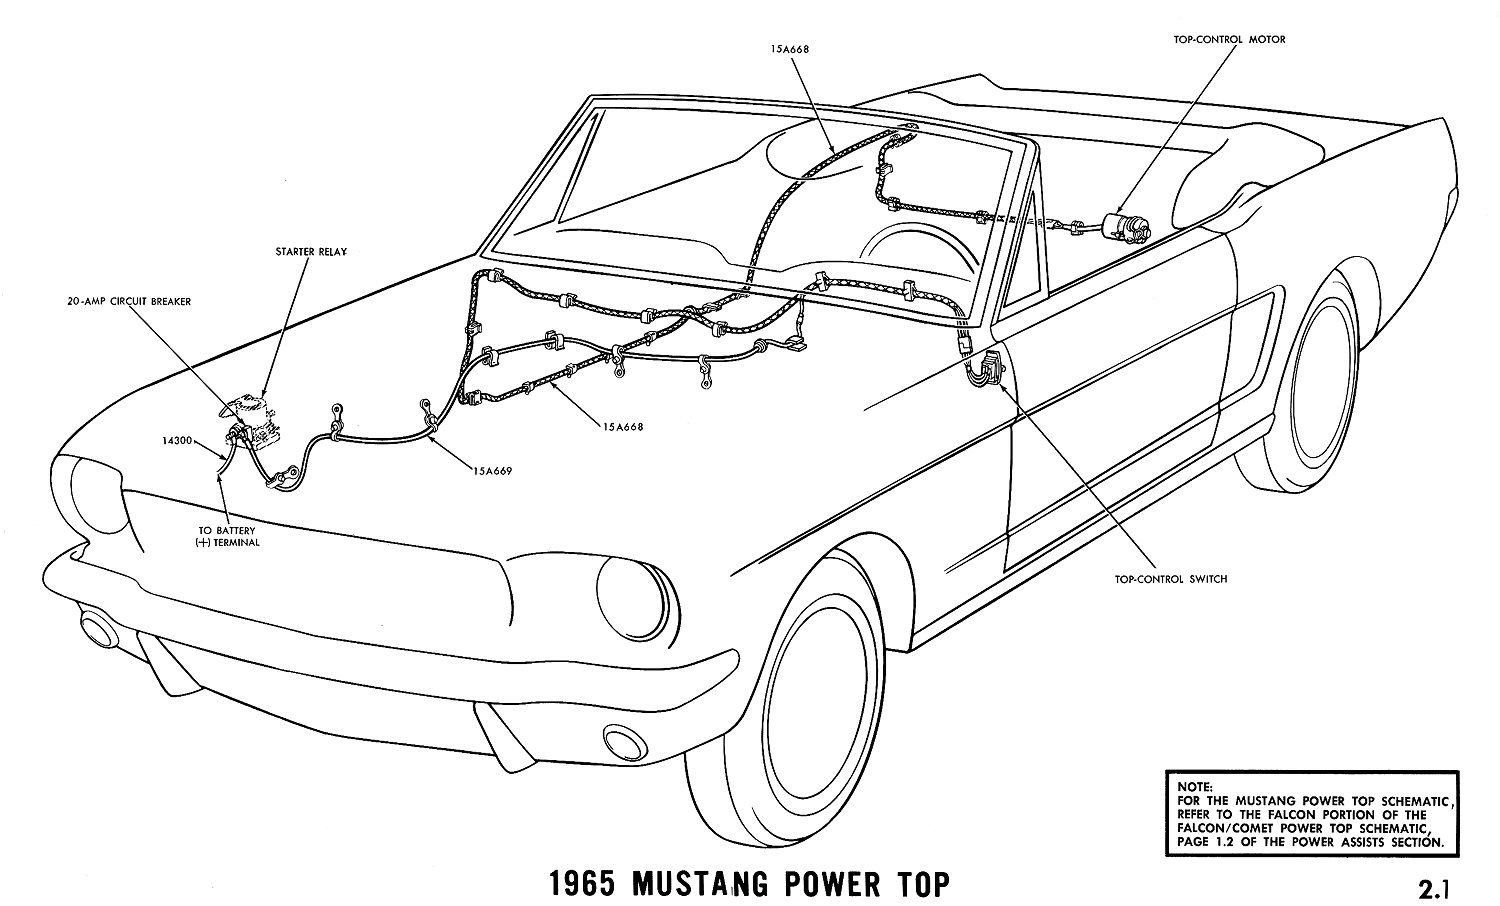 1965j 1965 mustang wiring diagrams average joe restoration 67 mustang wiring diagram at alyssarenee.co